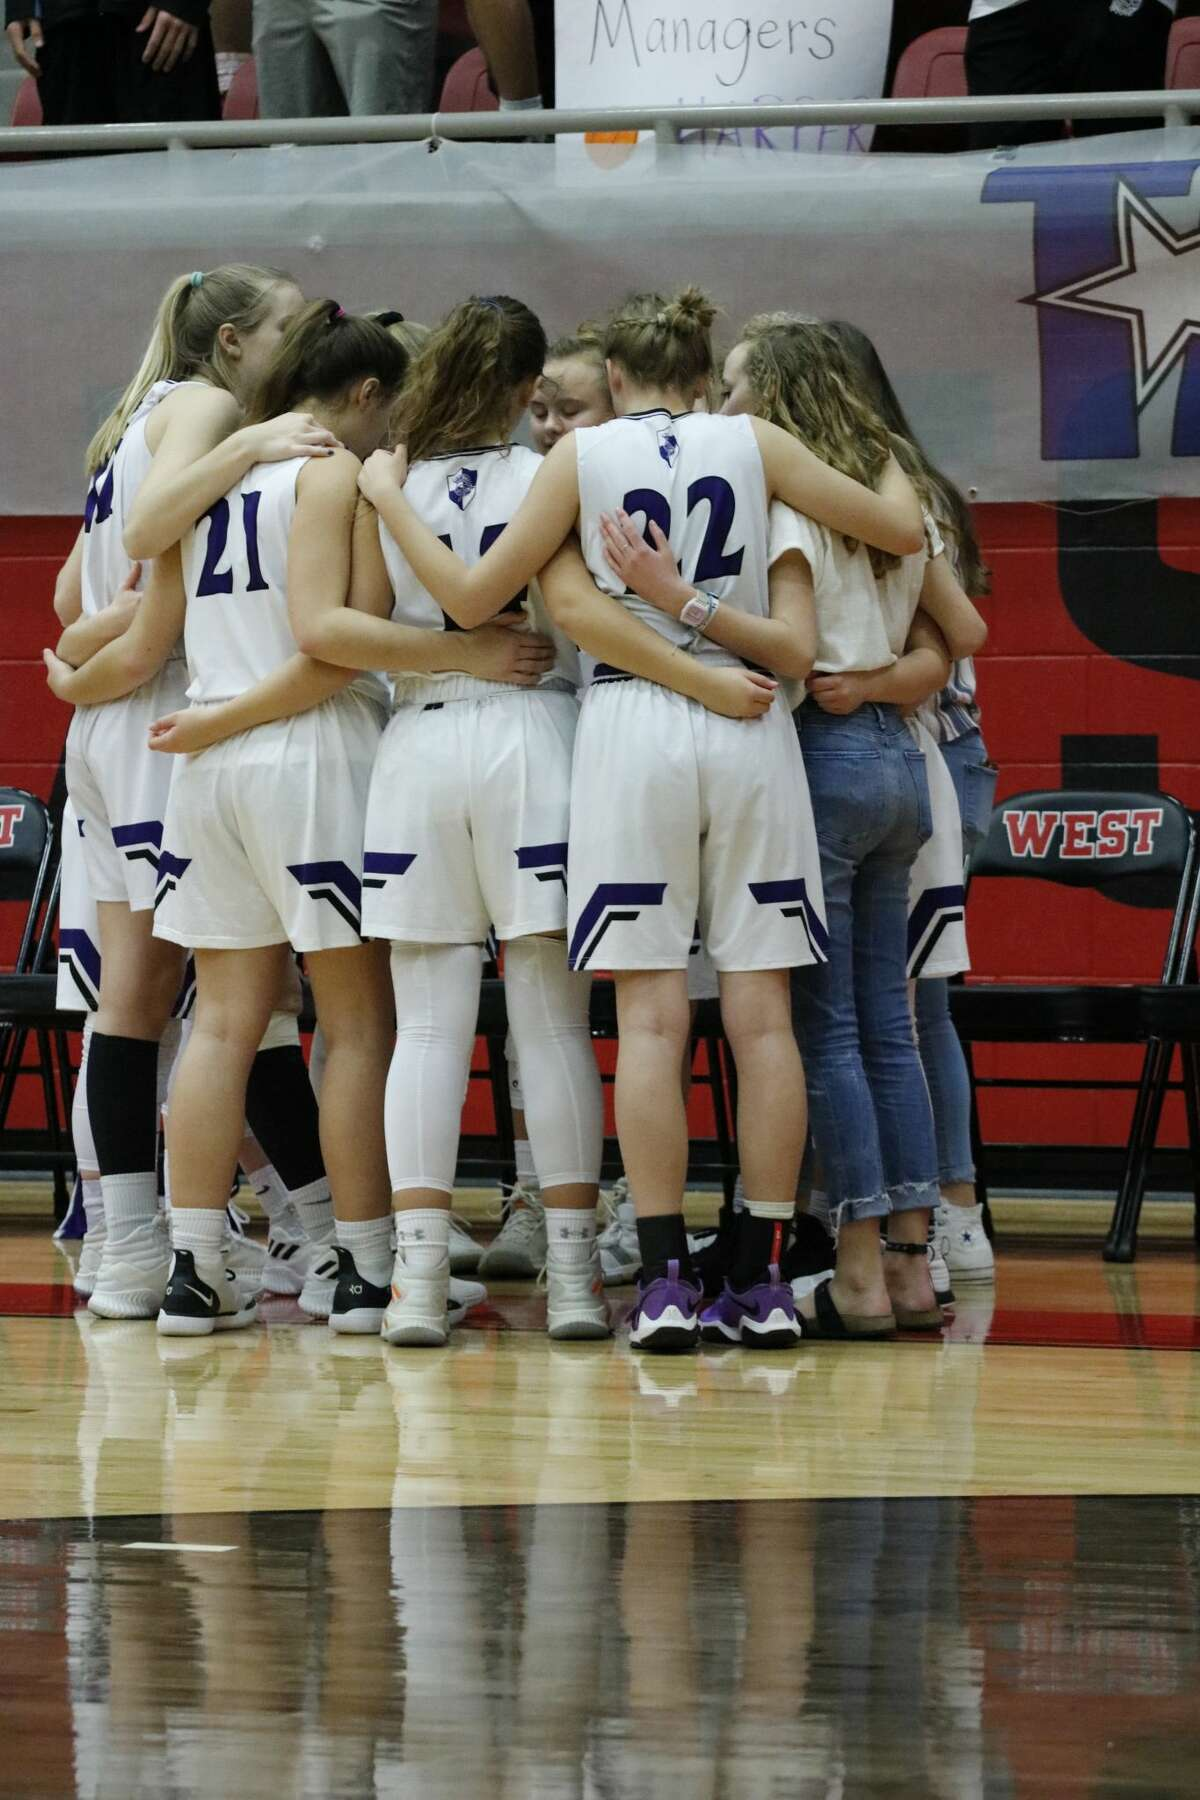 The MCA girls basketball team defeateddefeated Beaumont Legacy Christian, 72-47,in theTAPPS 3A state championship Saturday morning at West High School.